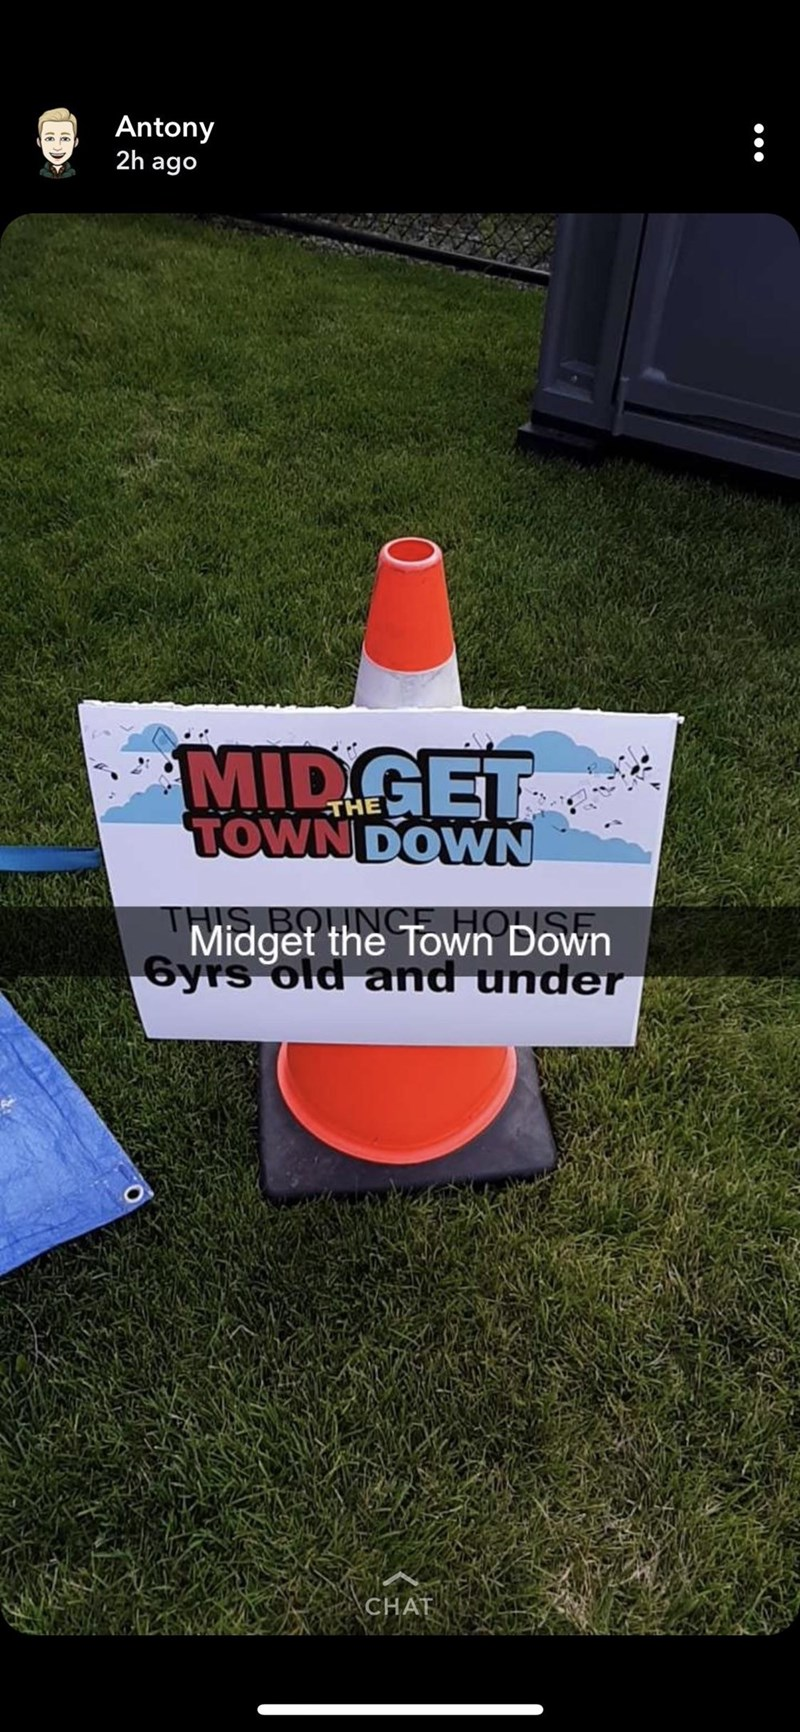 Grass - Antony 2h ago MIDGET TOWN DOWN THE THIS BOLINGE HOUSE Midget the Town Down 6yrs old and under CHAT